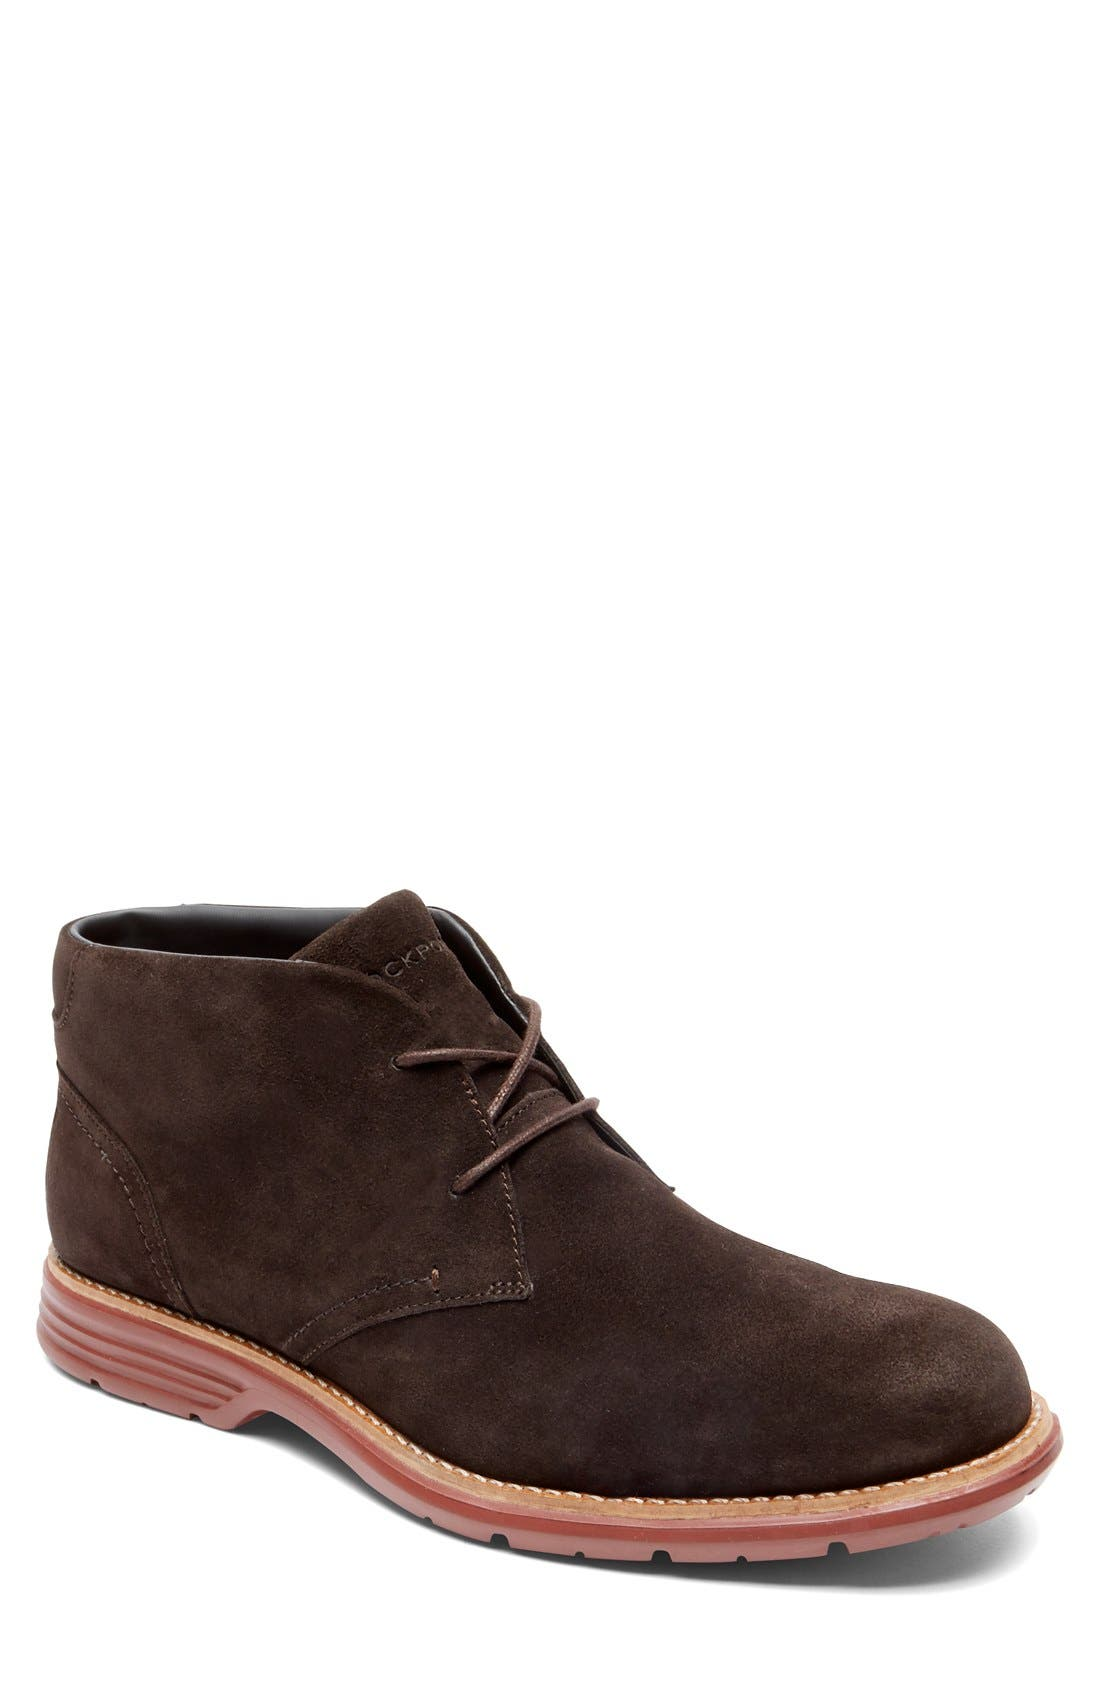 Alternate Image 1 Selected - Rockport 'Total Motion Fusion' Chukka Boot (Men)